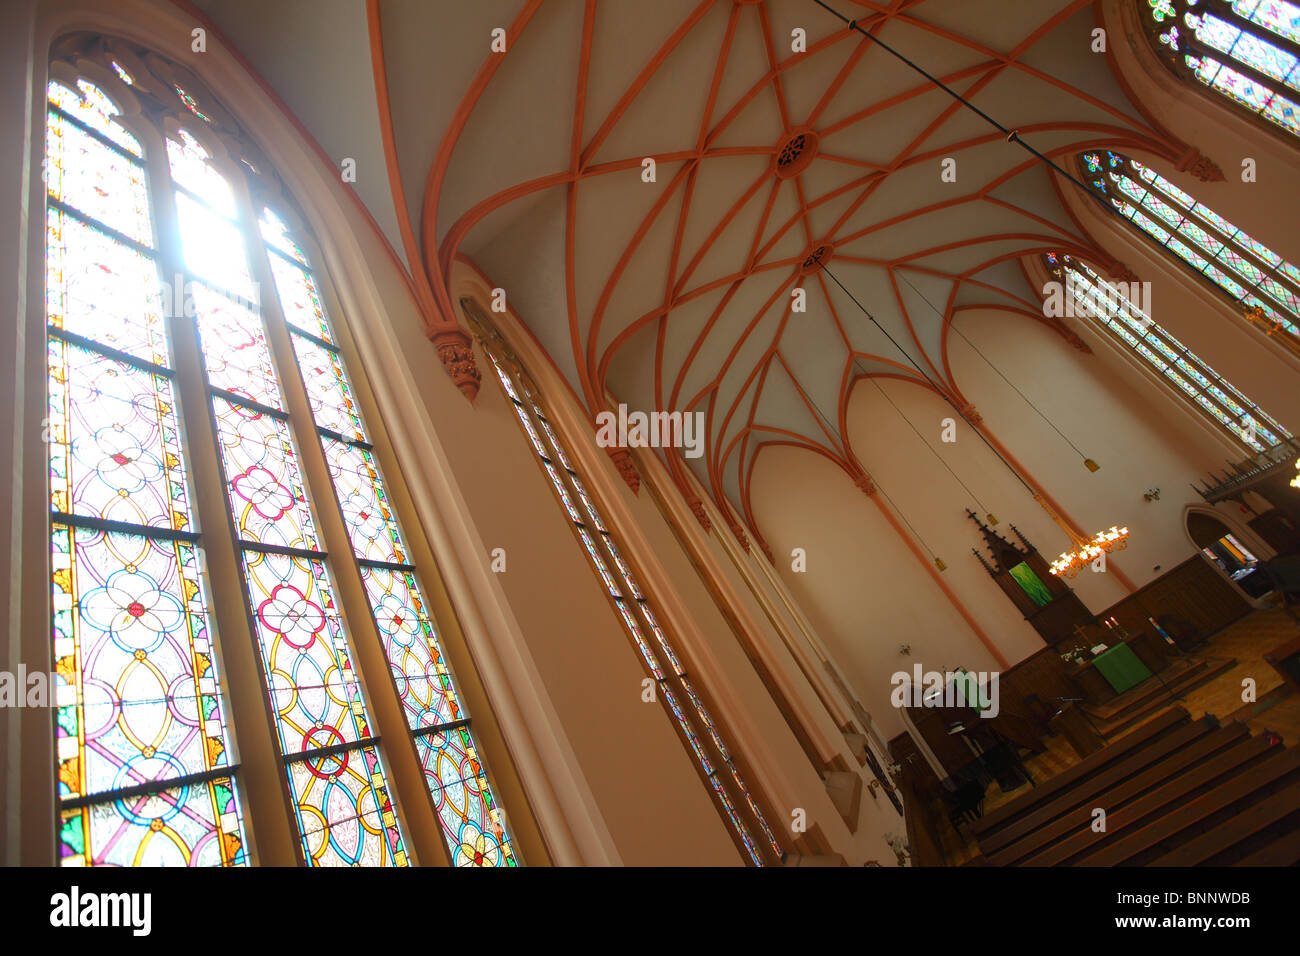 Glas Den Haag.Interior Of German Church With Stained Glas The Hague Den Haag